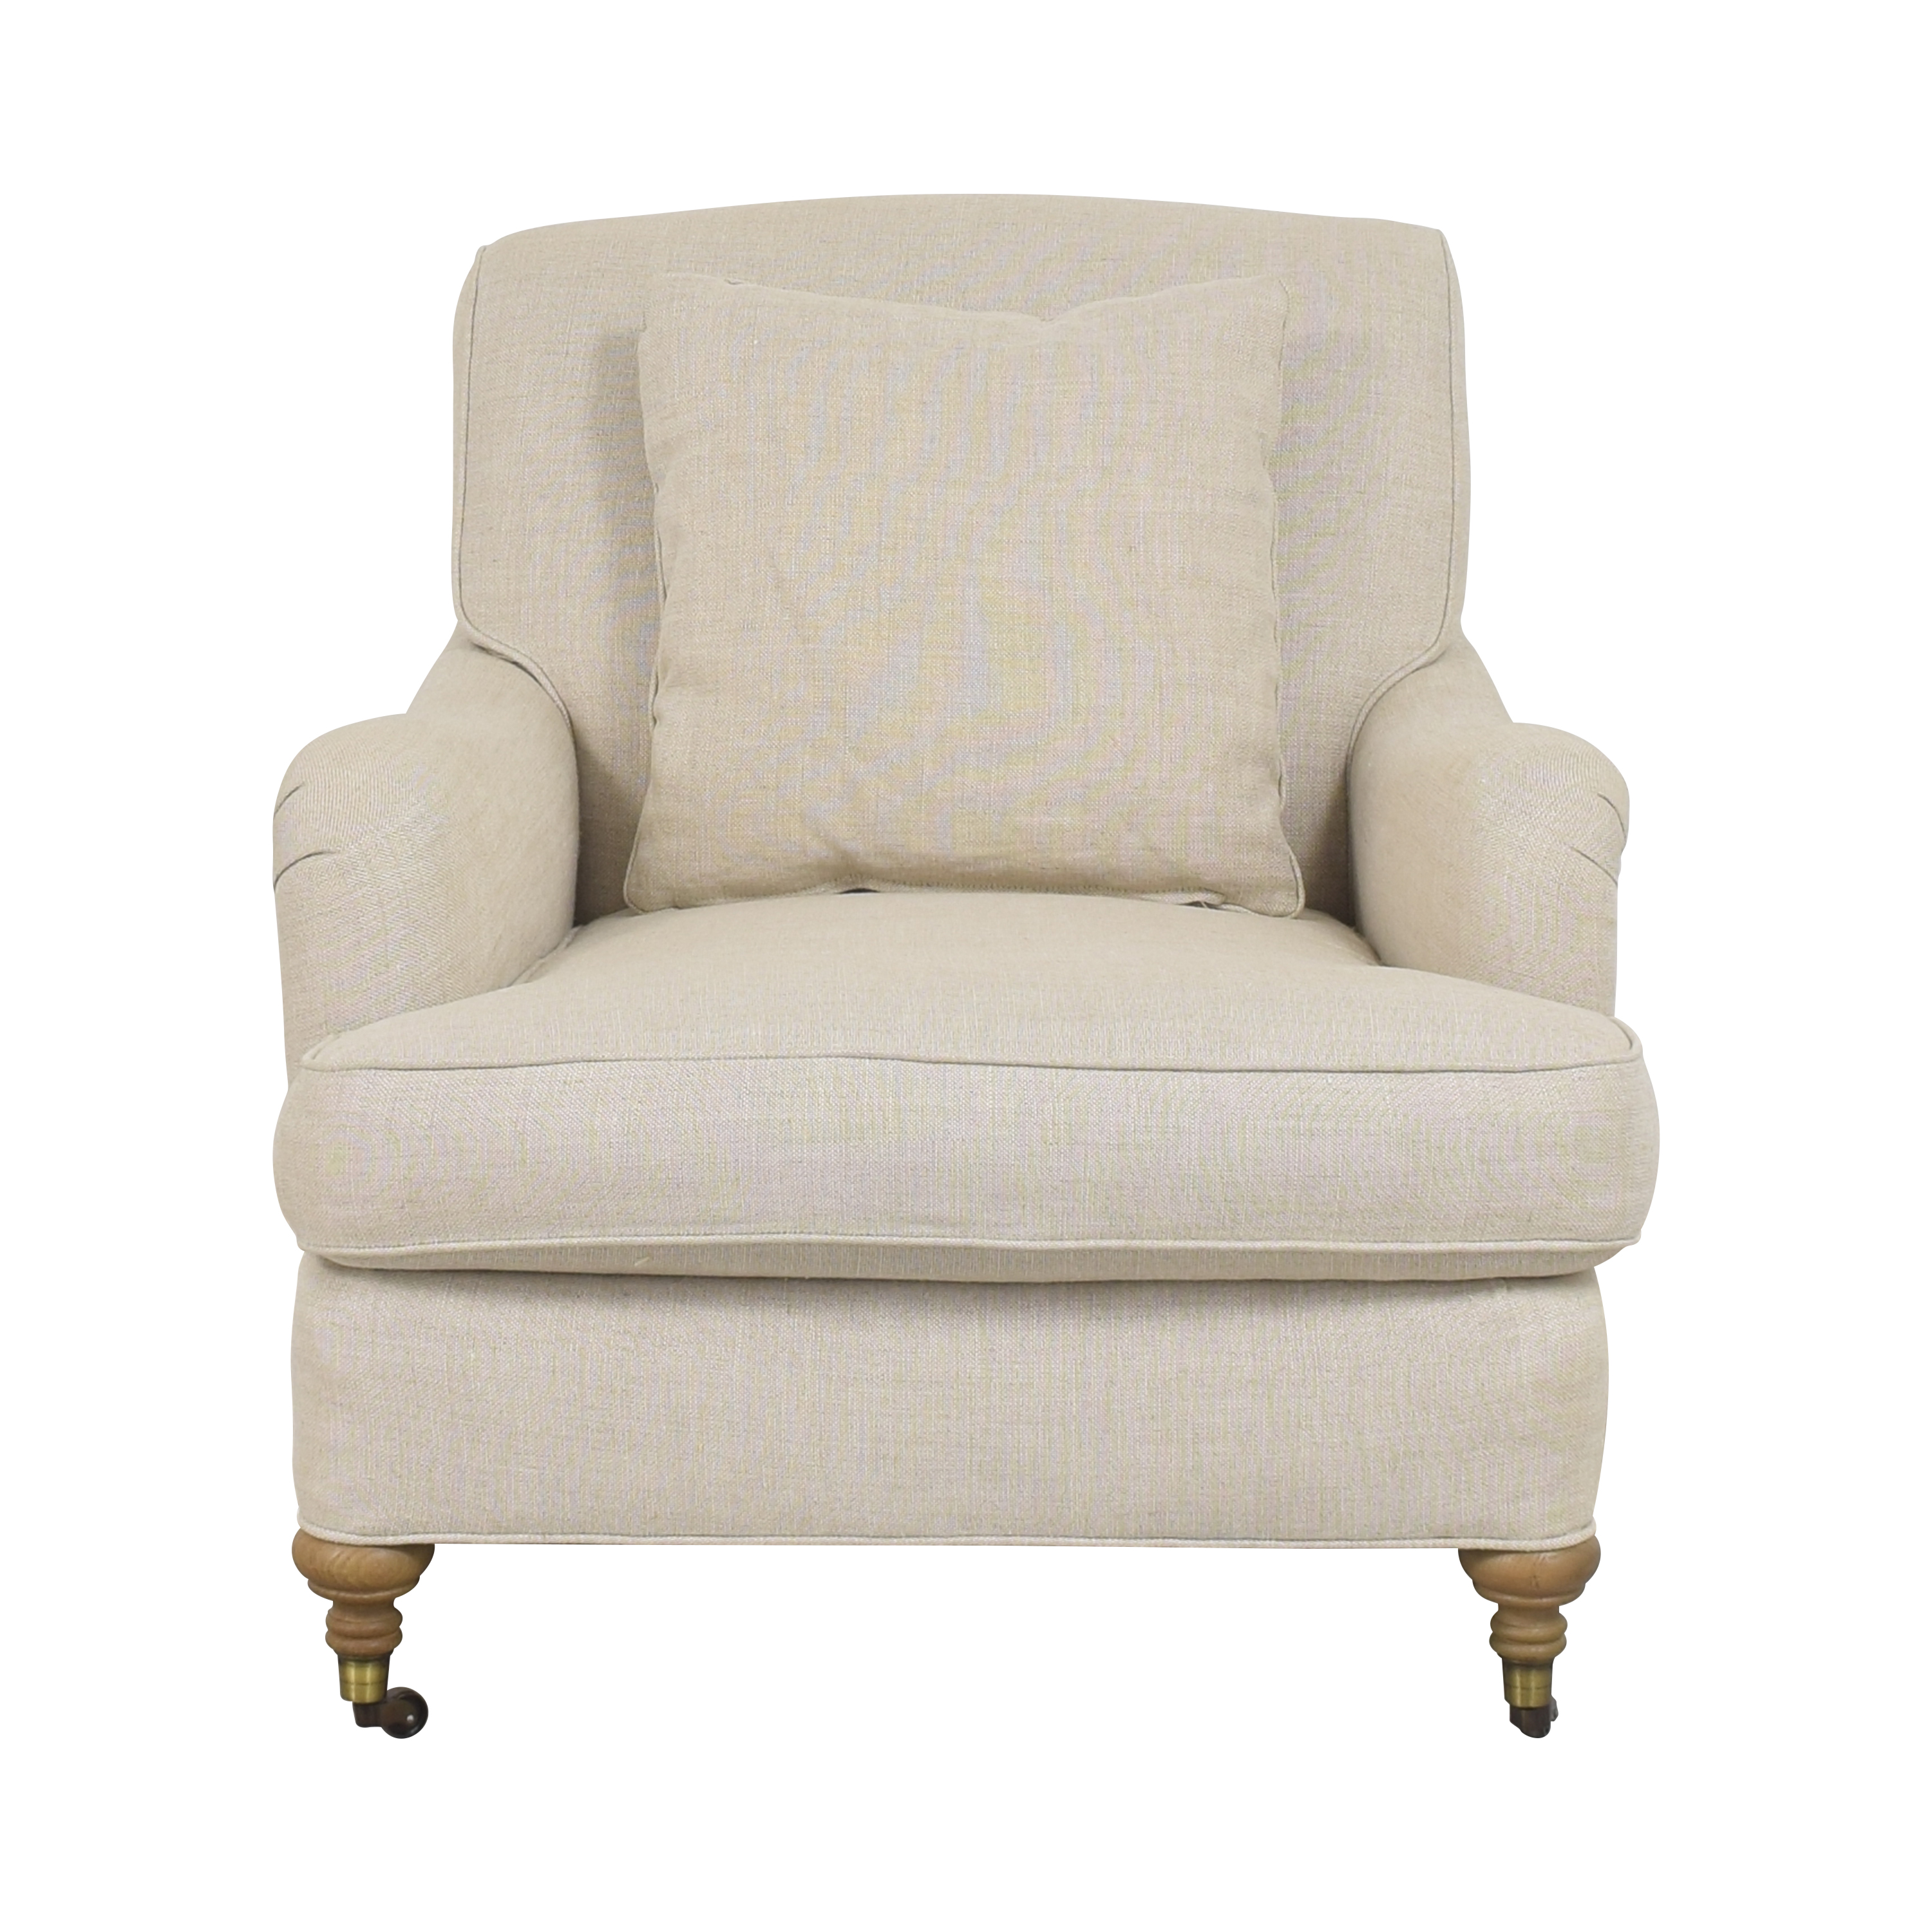 buy Restoration Hardware Barclay Chair Restoration Hardware Accent Chairs